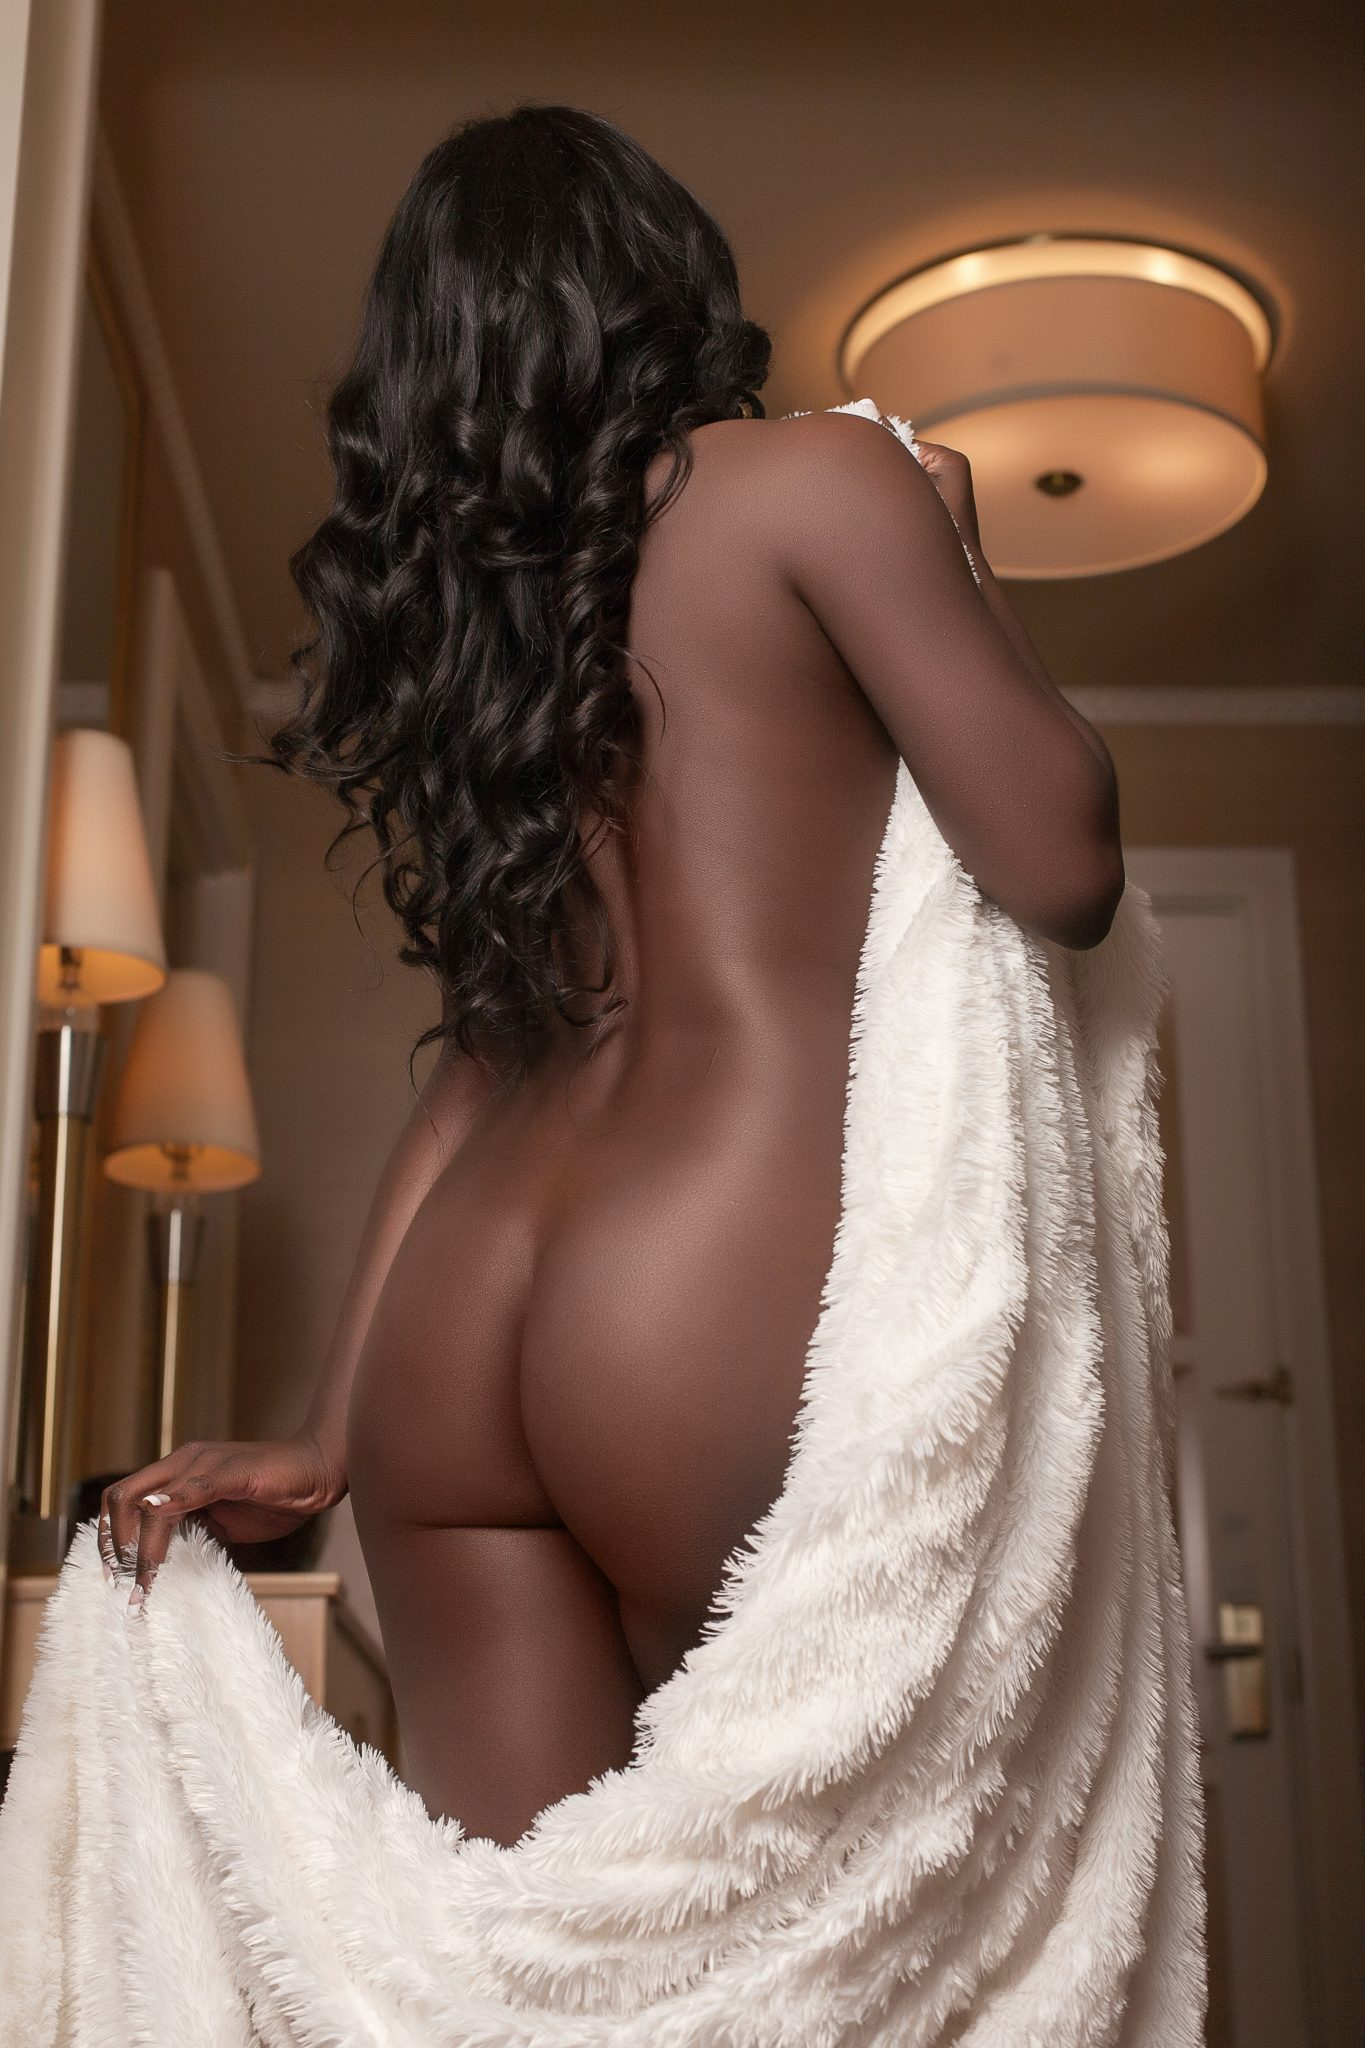 Boudoir client posing in hallway, implied nude. By Stacie Frazier of Haute Shots in Las Vegas.